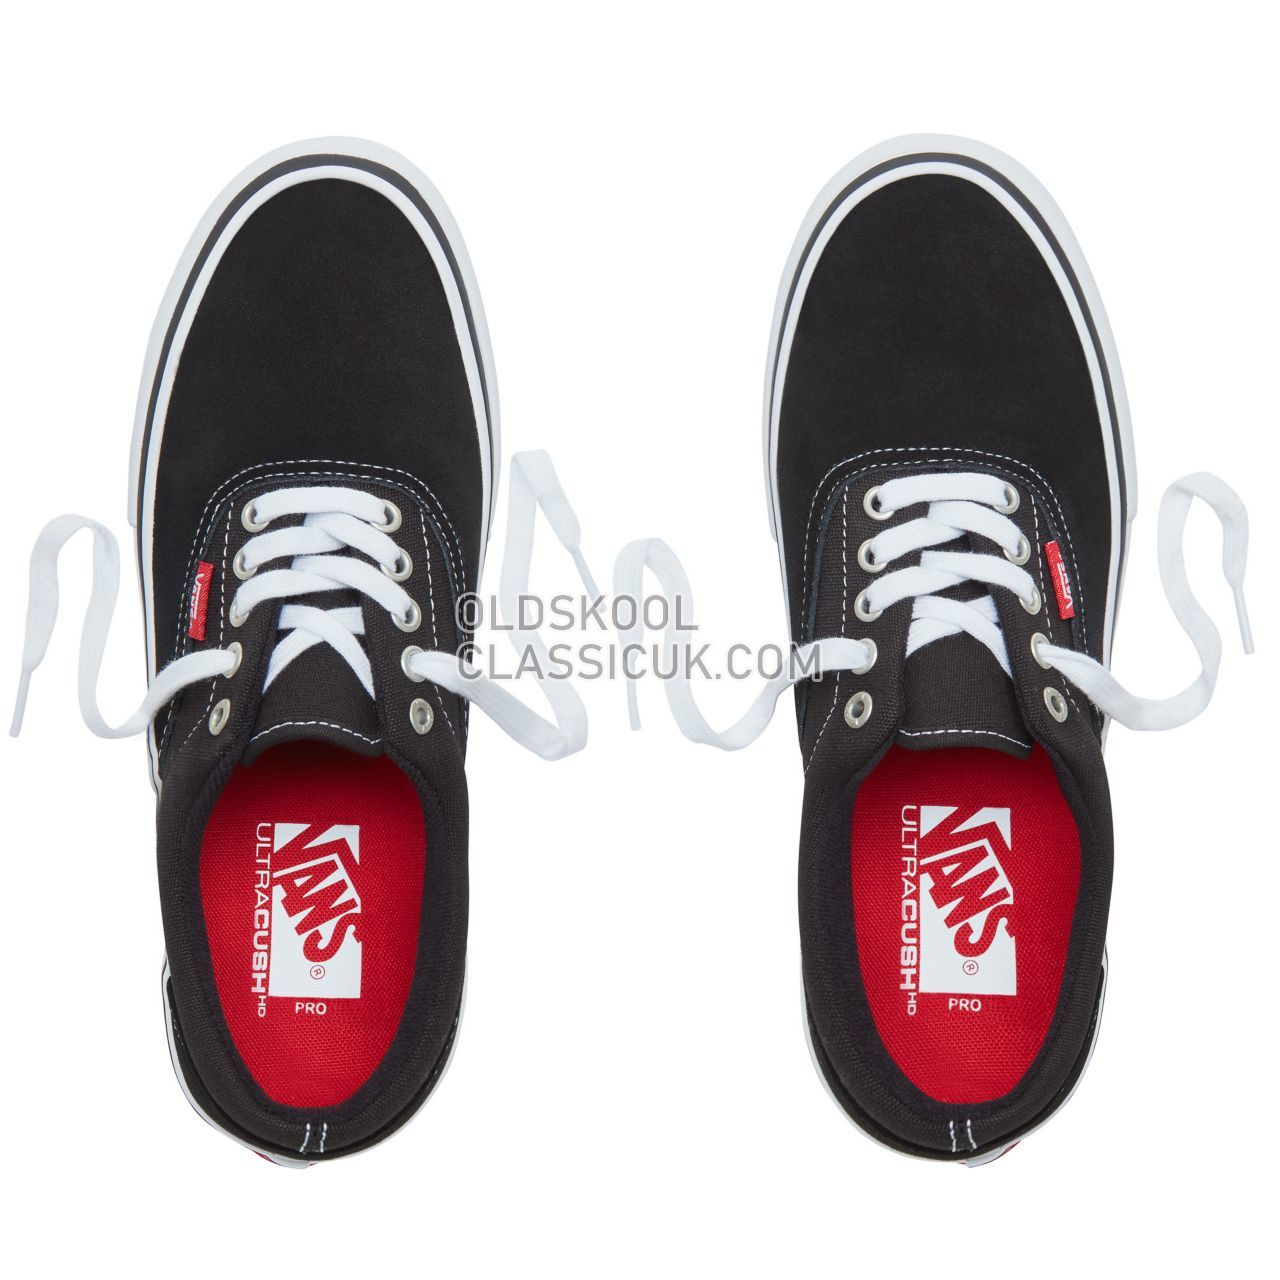 Vans Era Pro Sneakers Mens Black/White/Gum VVFB9X1 Shoes